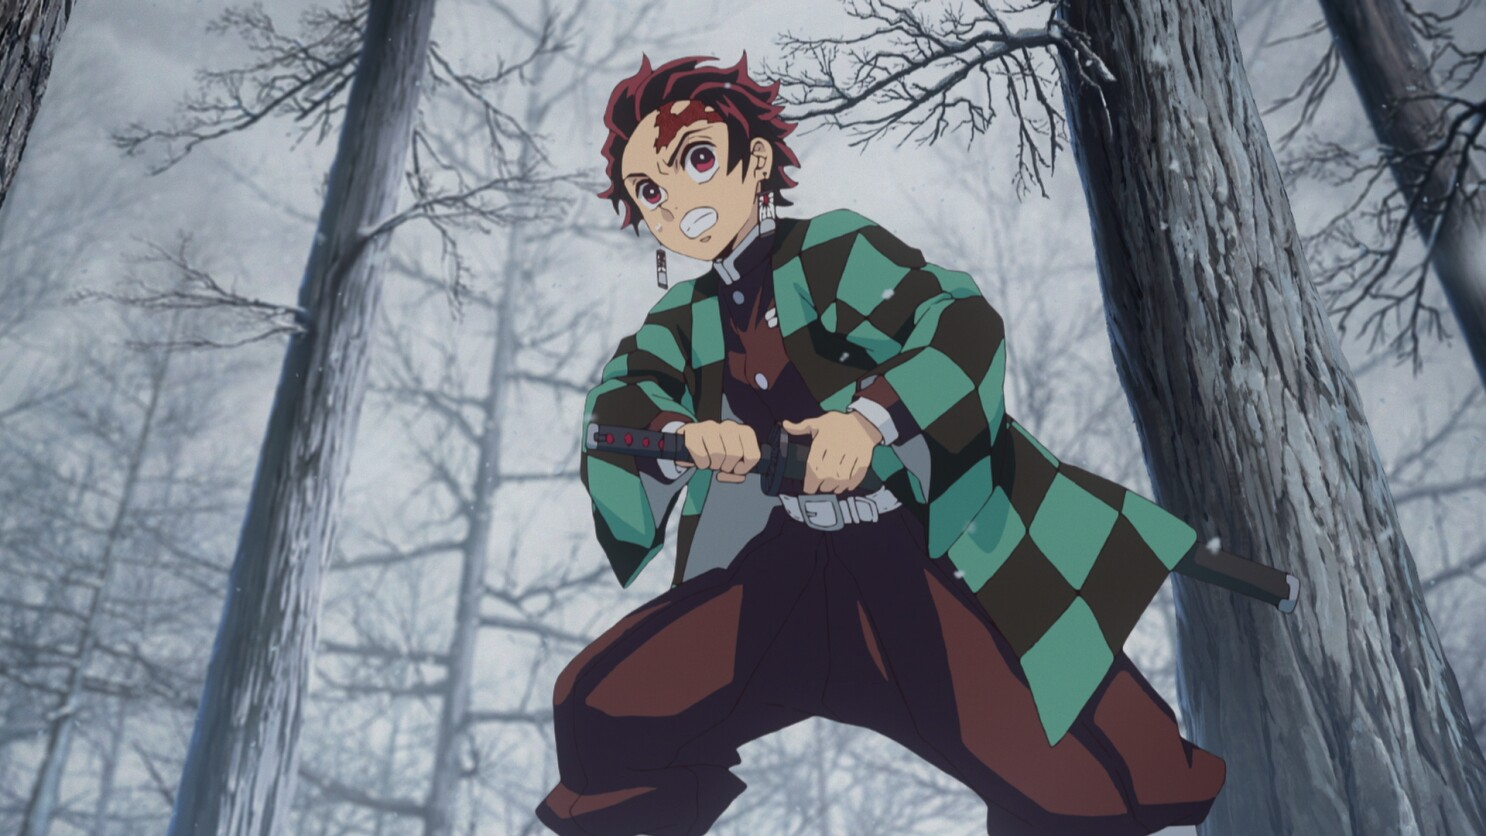 Demon Slayer Review Anime Megahit Thrills And Confuses Los Angeles Times